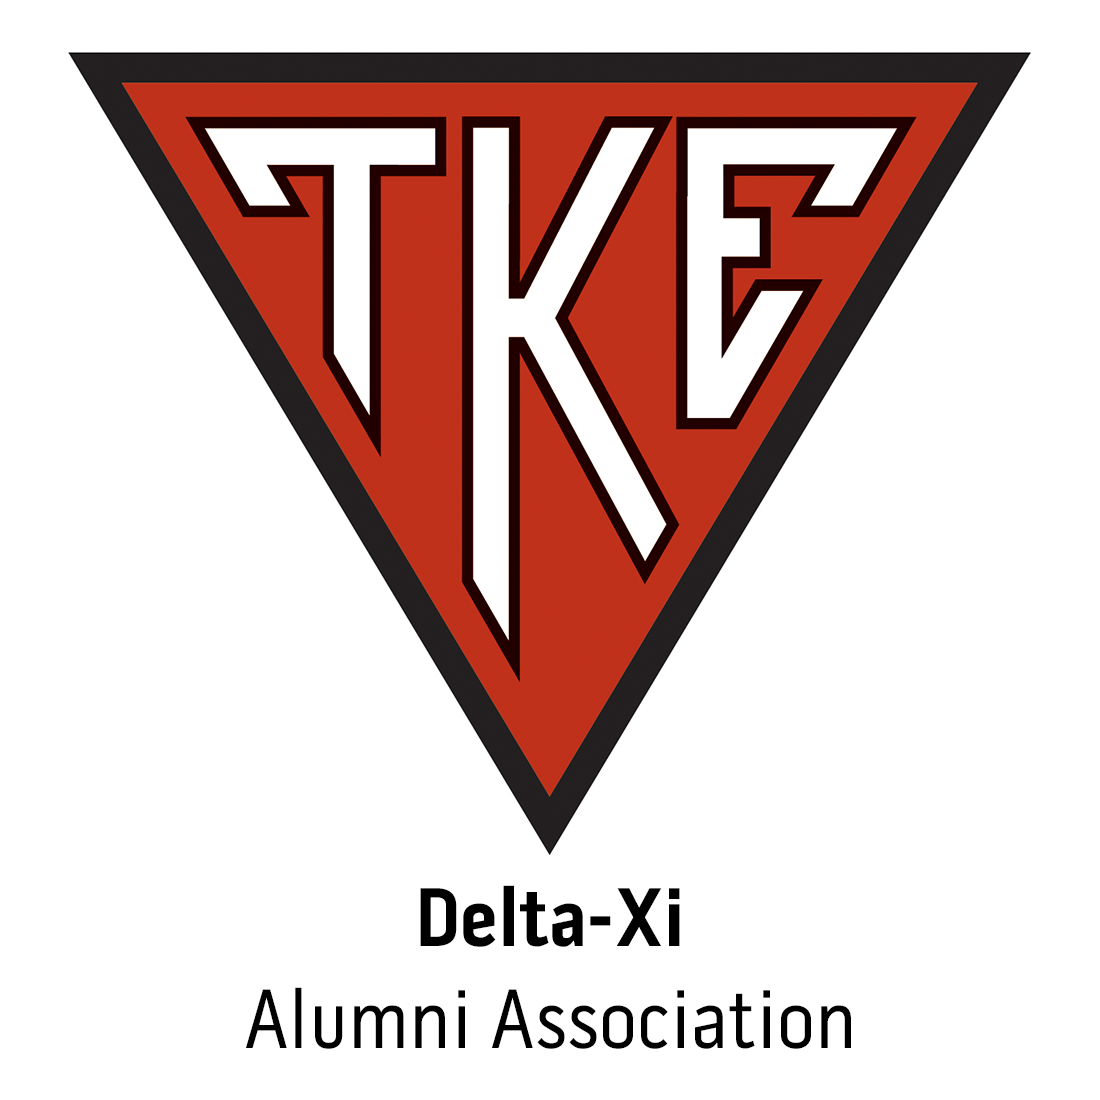 Delta-Xi Alumni Association at Miami University